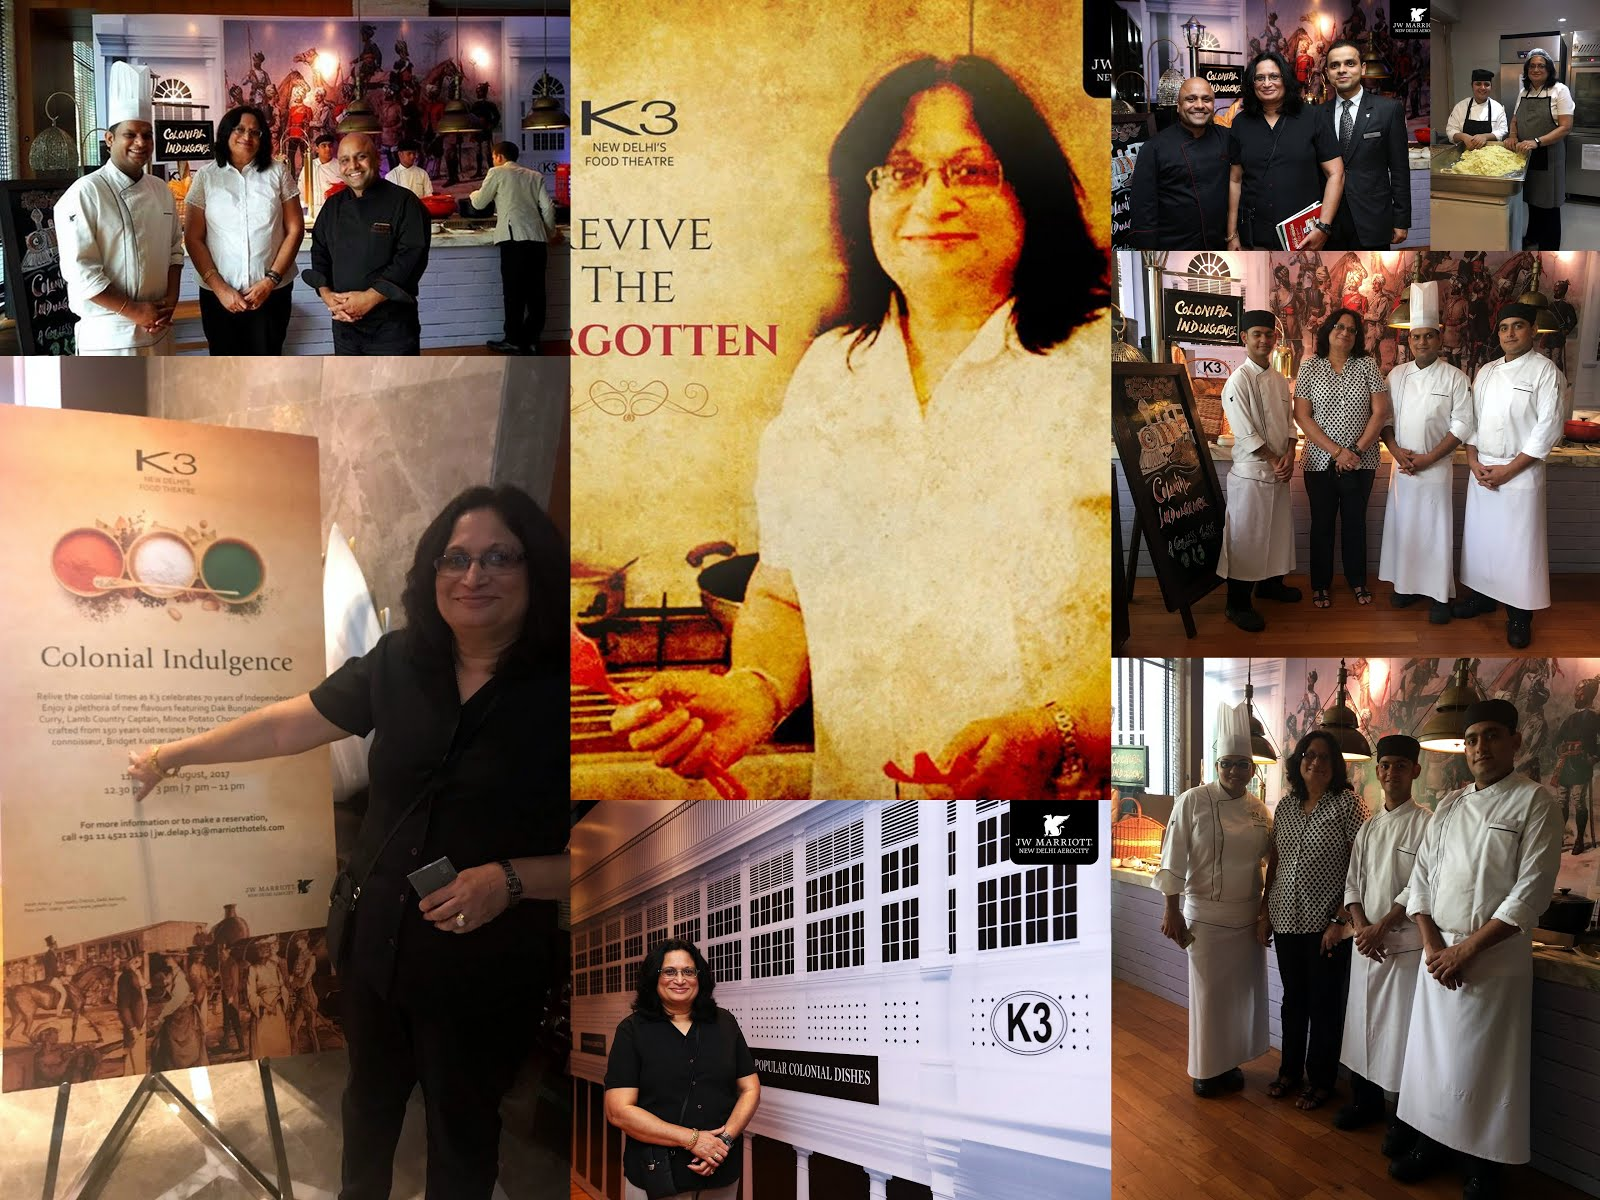 COLONIAL ANGLO-INDIAN FOOD PROMOTION EVENT - CULINARY INDULGENCE- AT J W MARRIOTT, NEW DELHI, AEROC